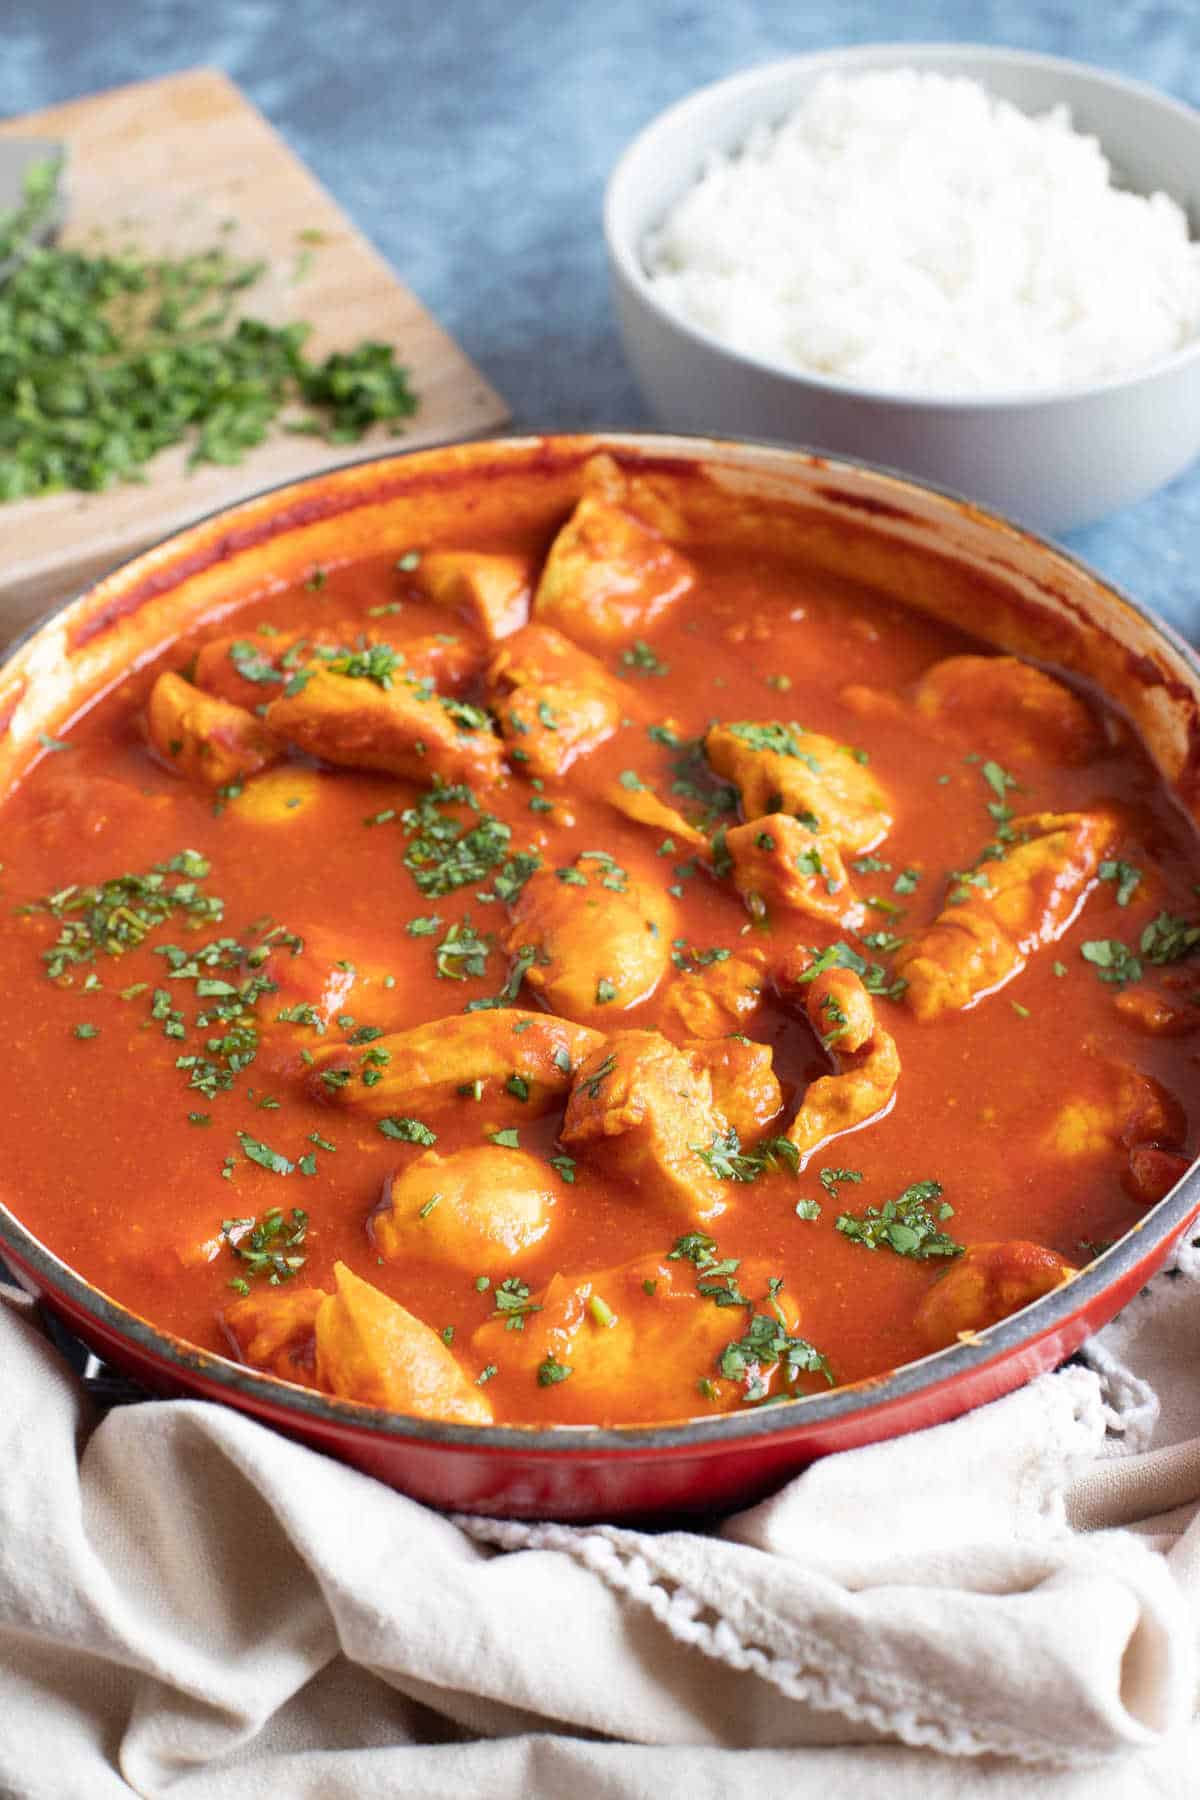 Chicken pathia curry with rice.